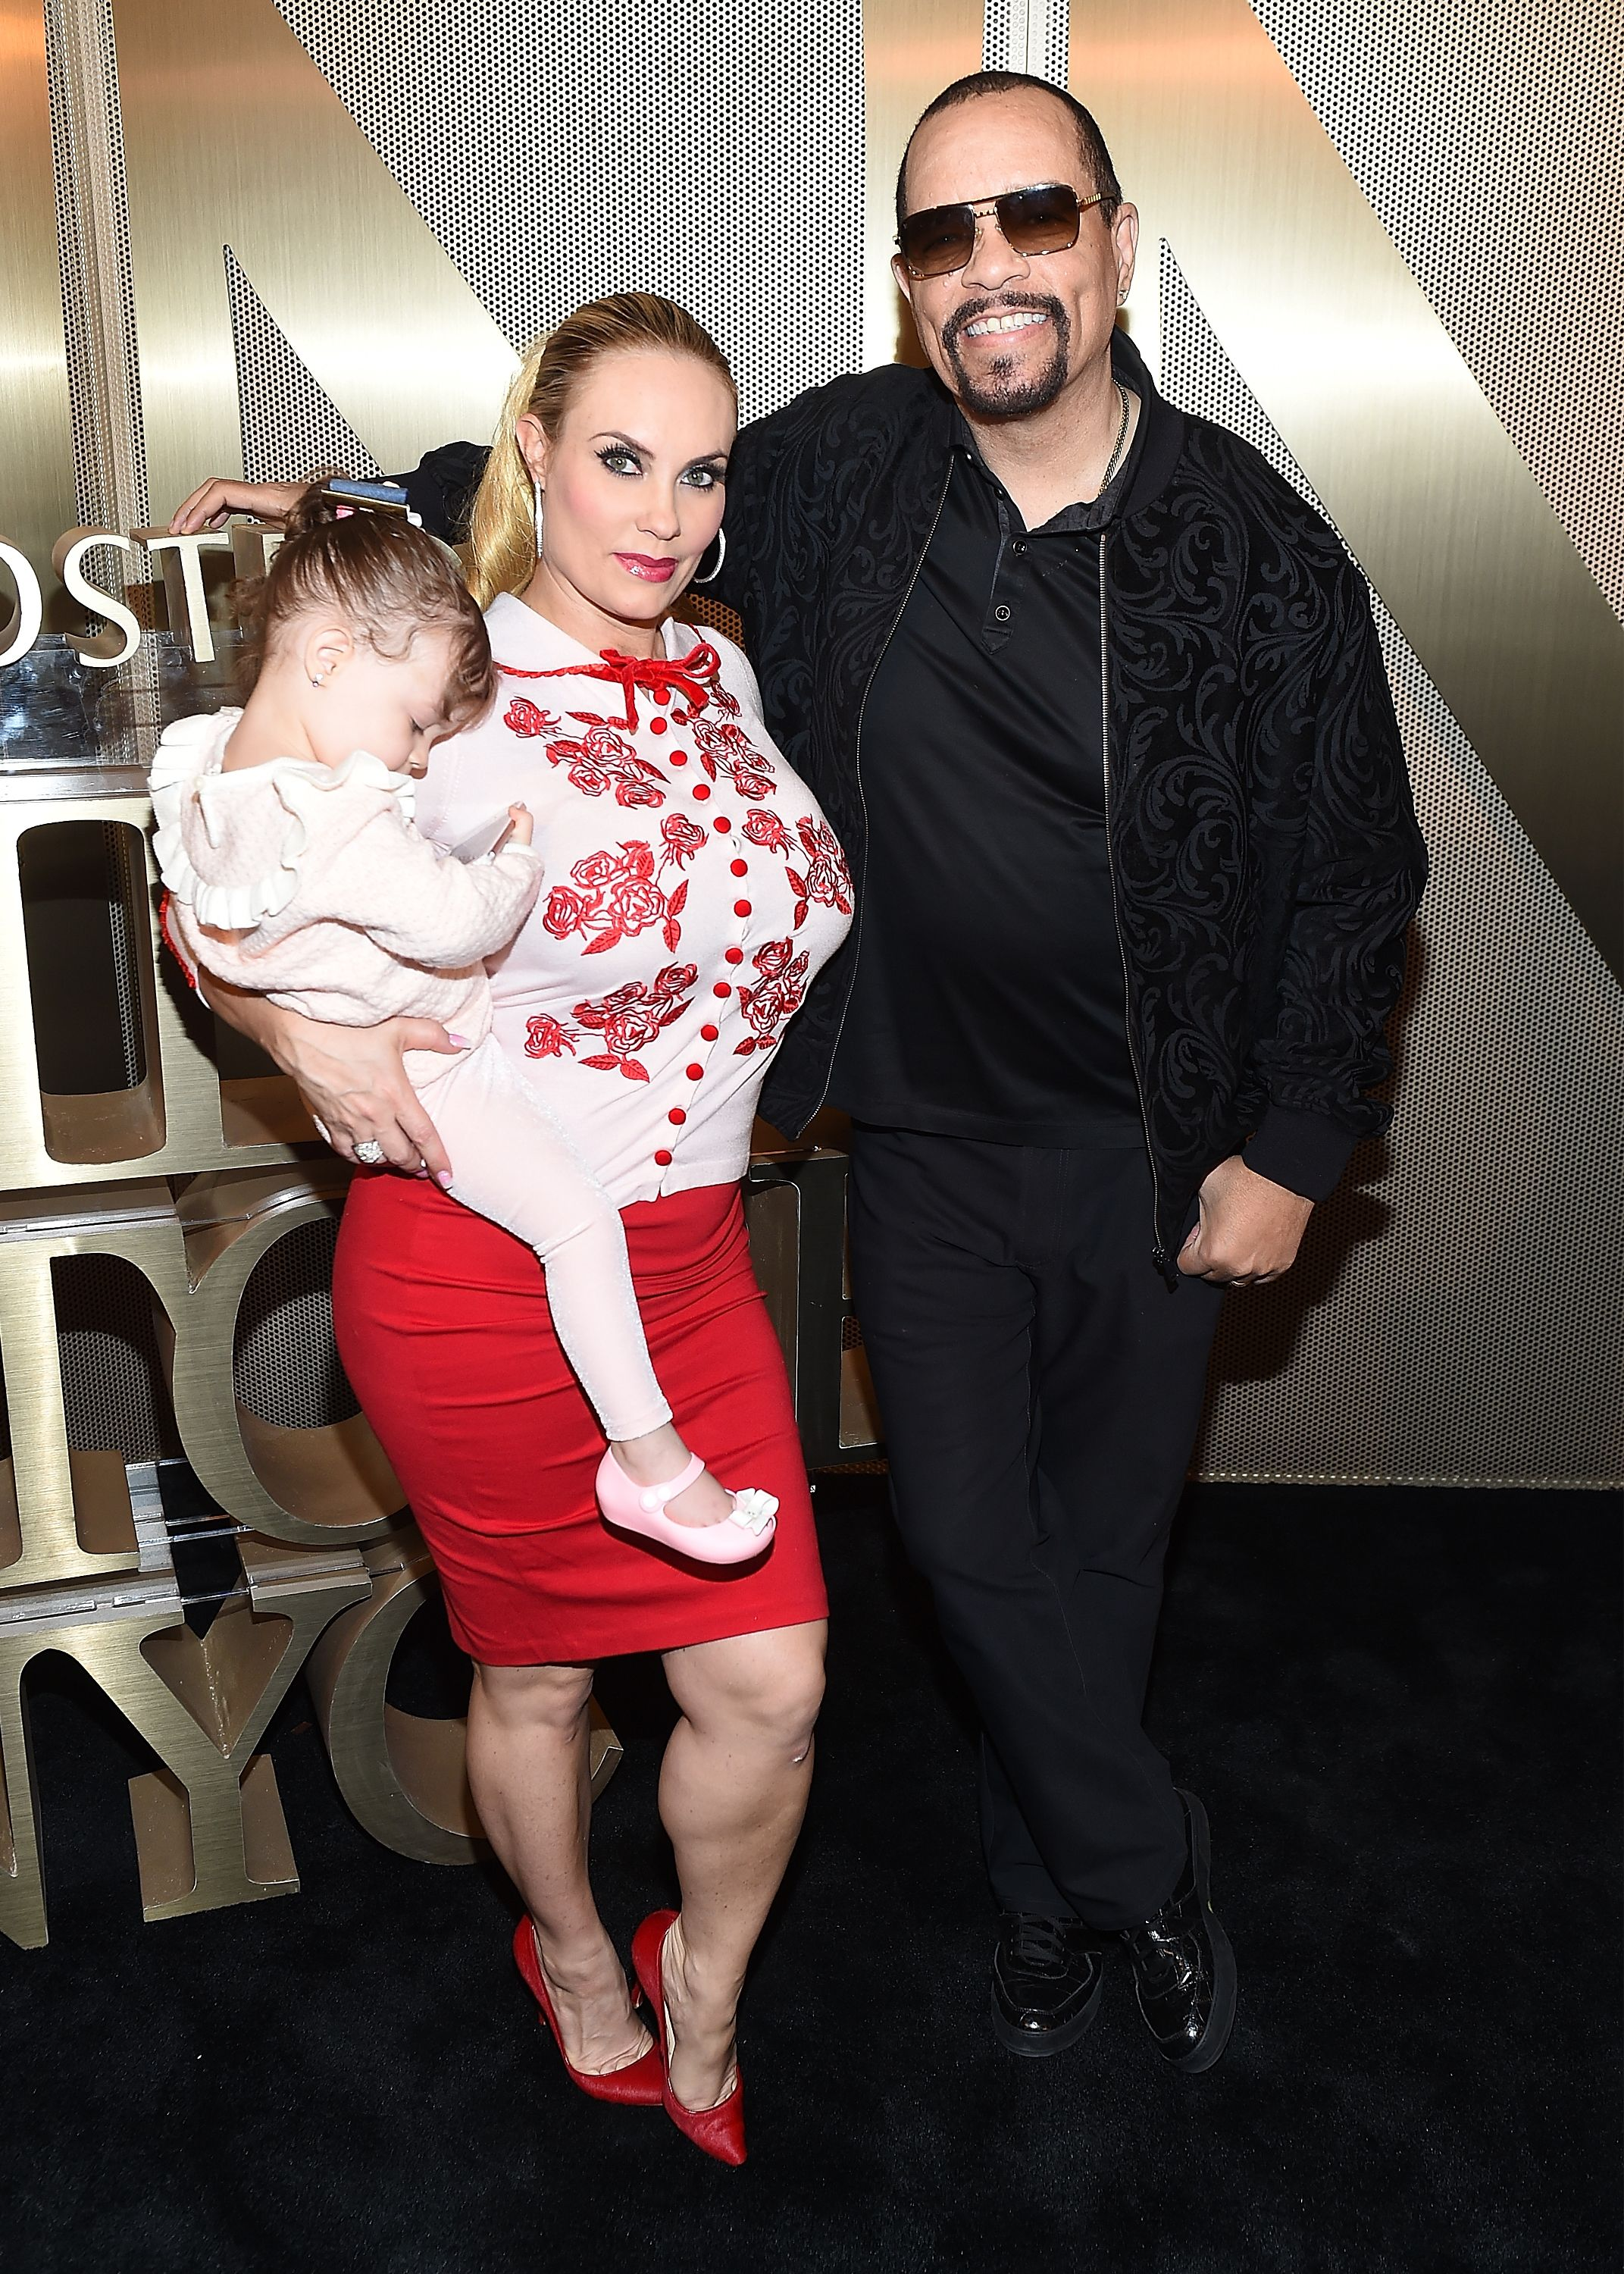 Coco Austin, Chanel, and Ice-T at the Nordstrom Men's NYC Store Opening in 2018/ Source: Getty Images